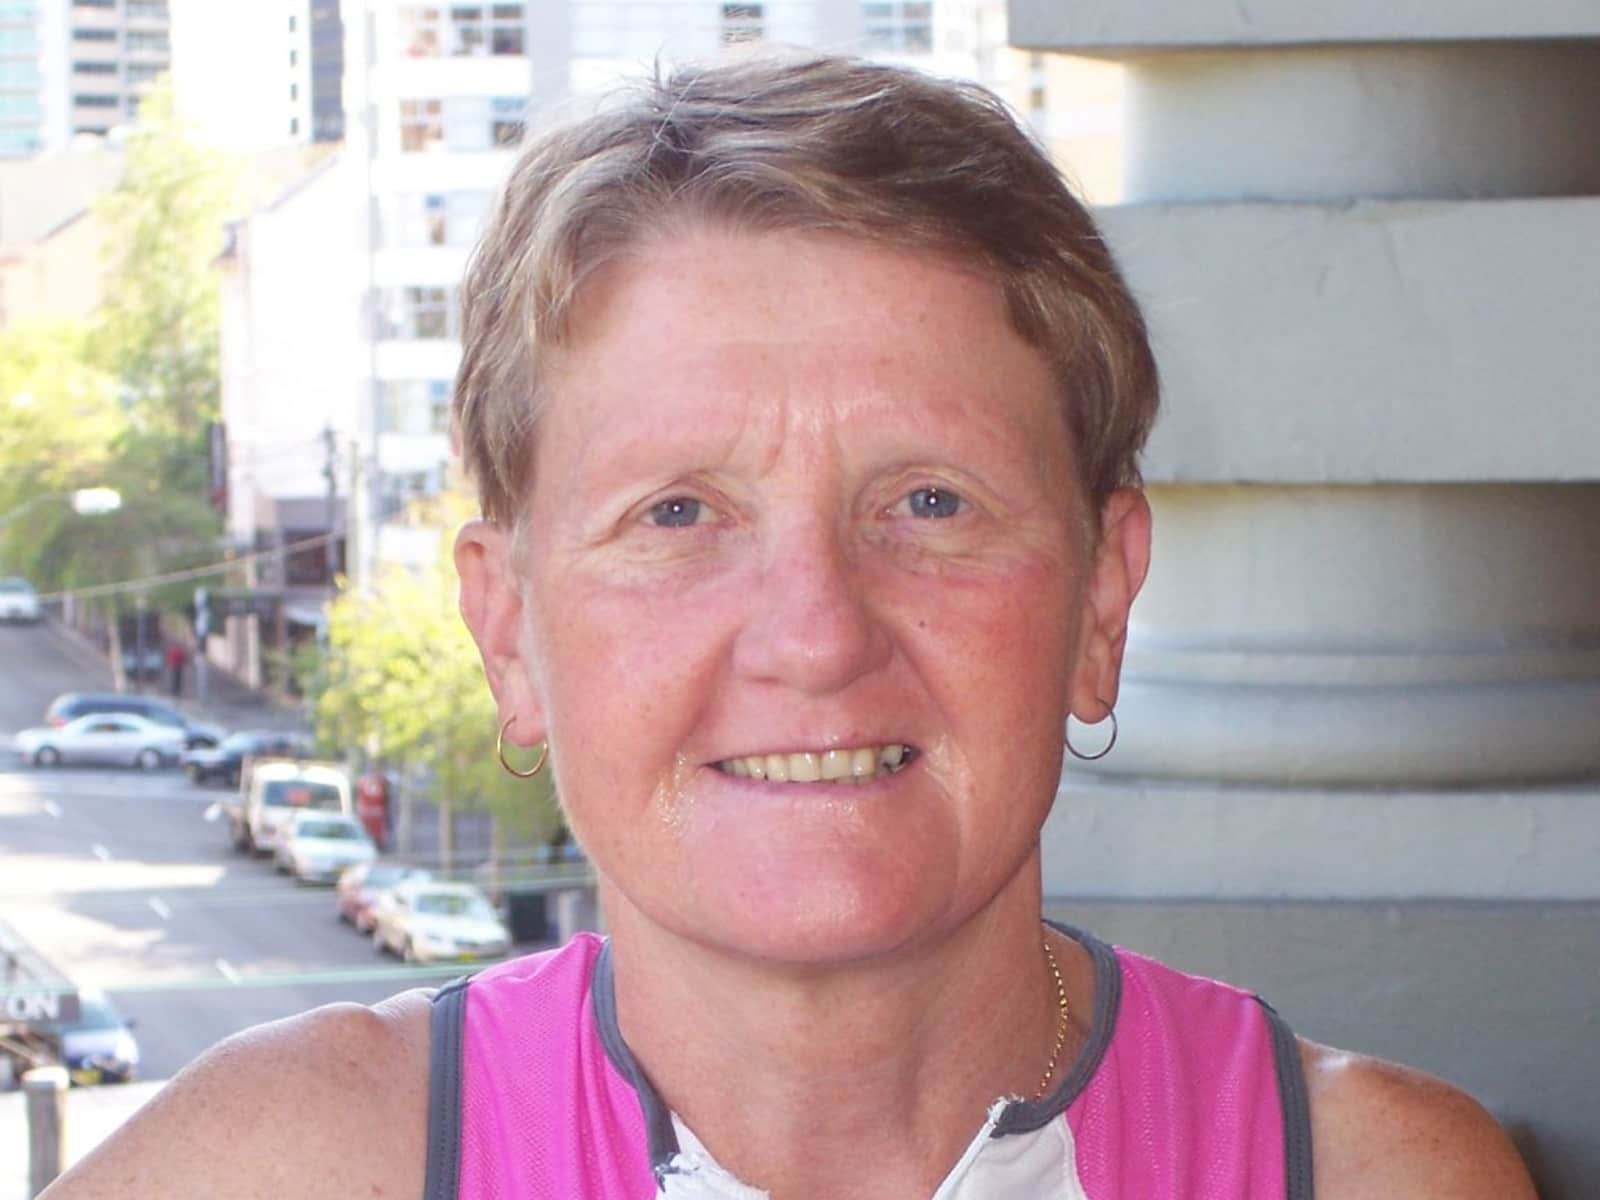 Kate from Sydney, New South Wales, Australia